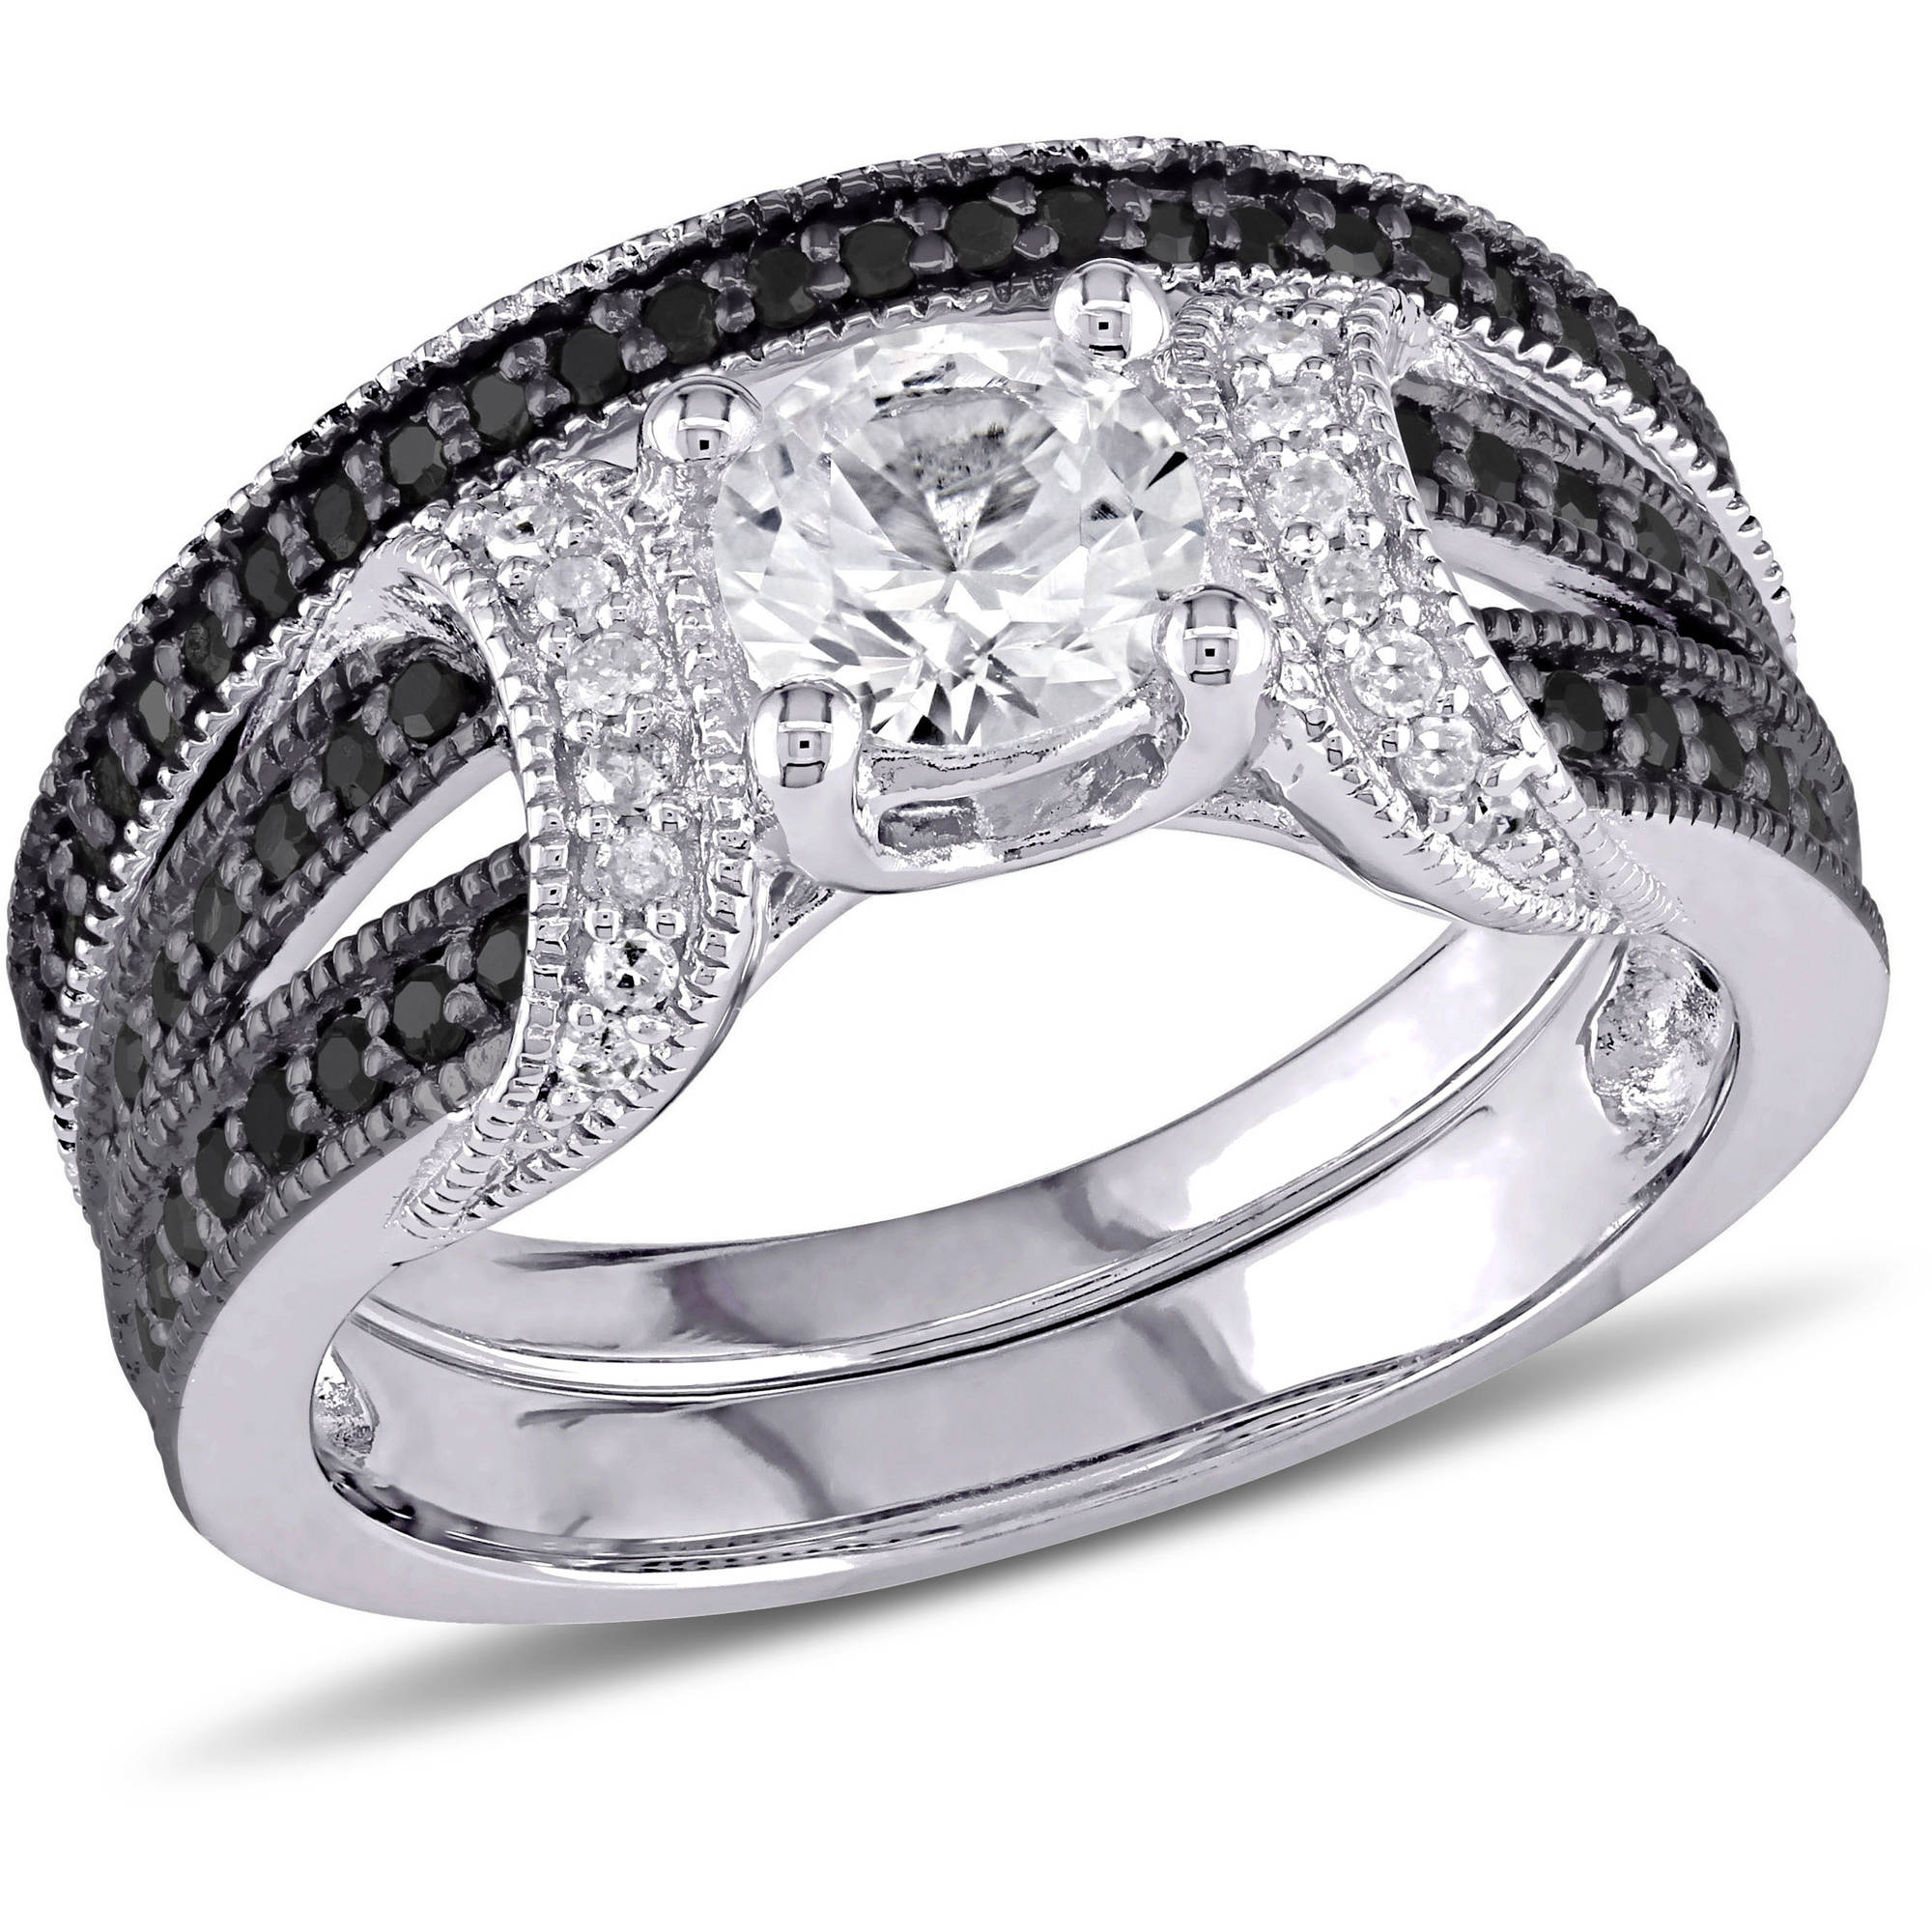 5 8 Carat T.G.W. Created White Sapphire with 2 5 Carat T.W. Black and White Diamond Sterling Silver Bridal Set by Generic